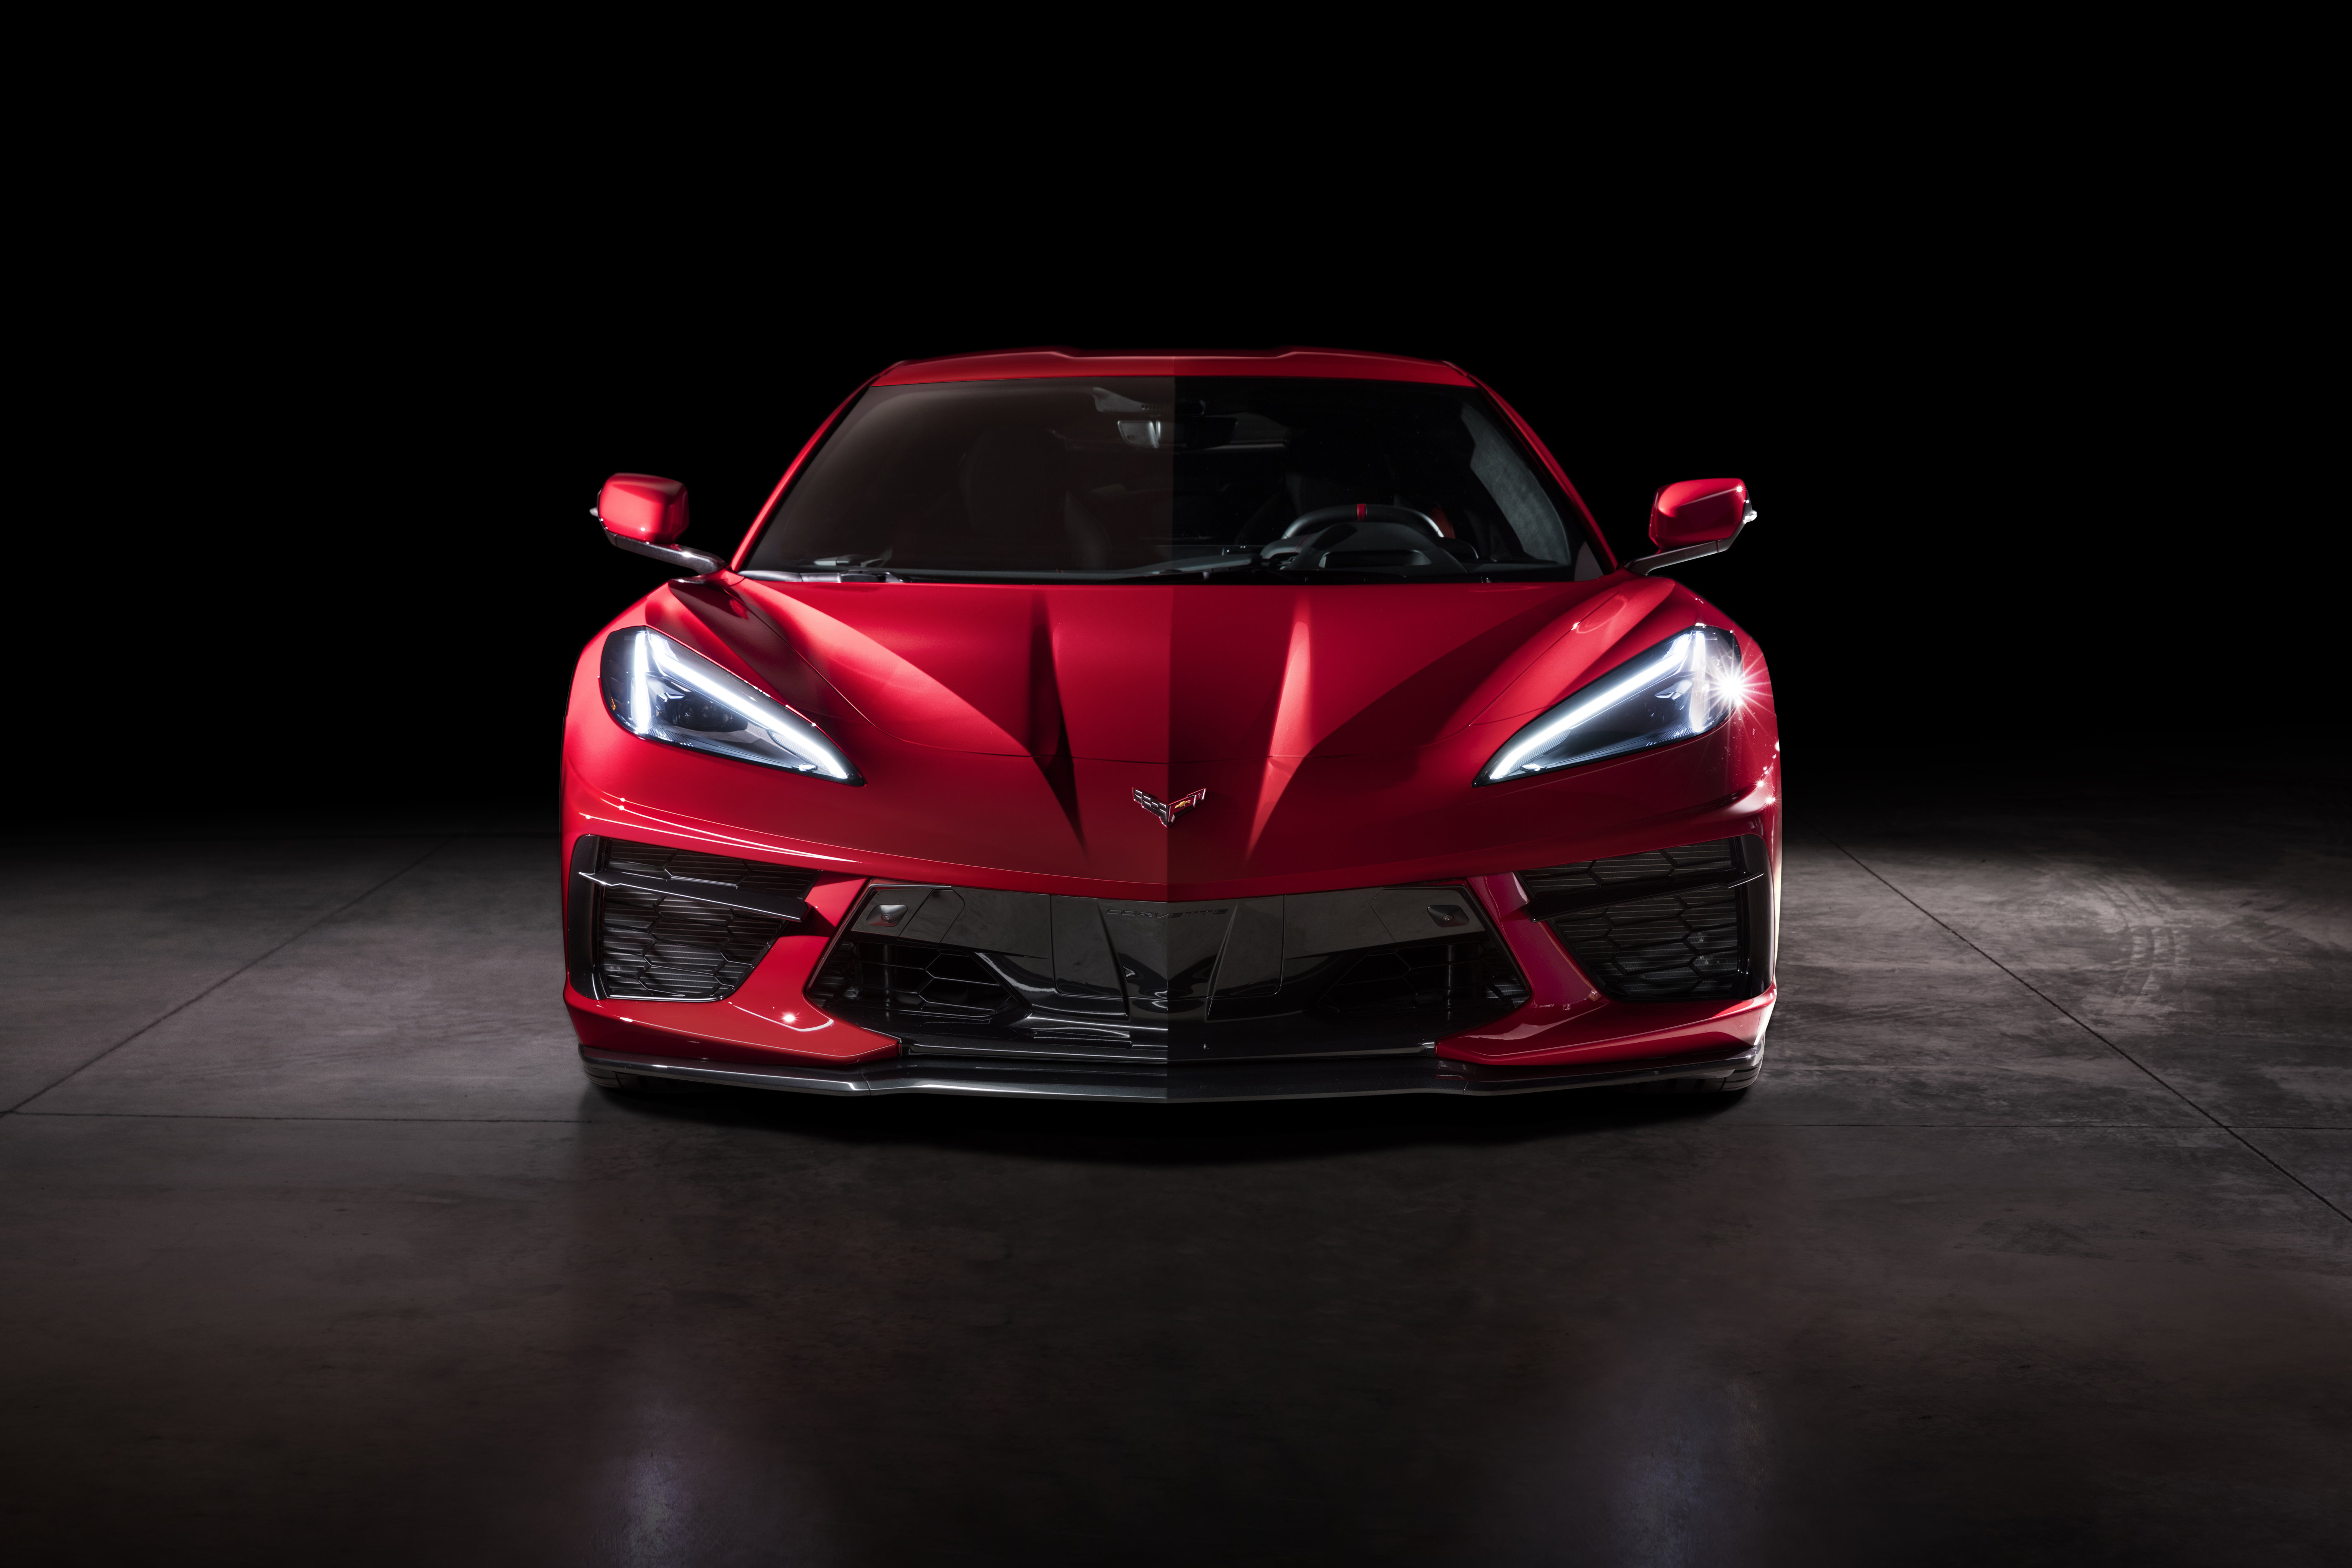 Chevrolet Corvette C8 Stingray C8